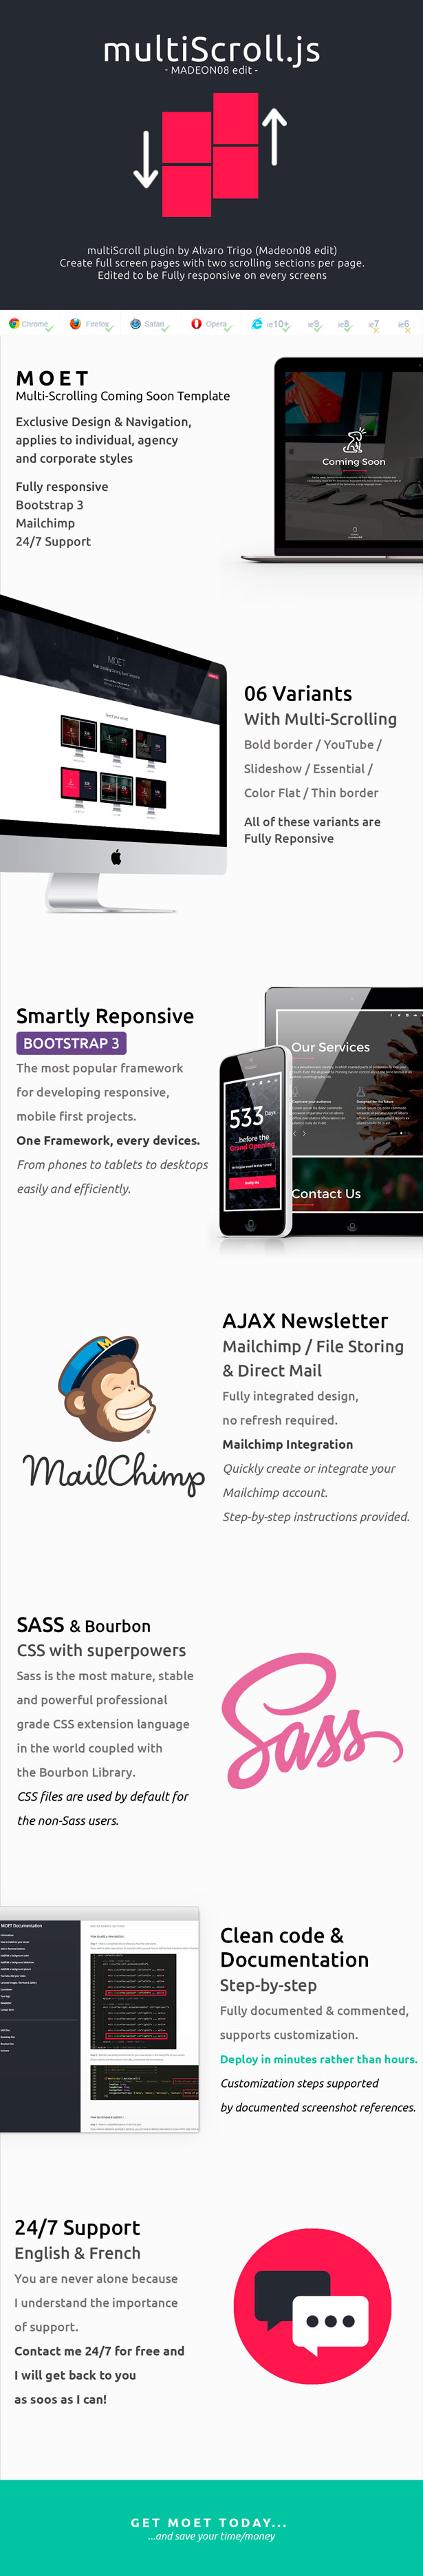 MOET - Multi-Scrolling Coming Soon Template